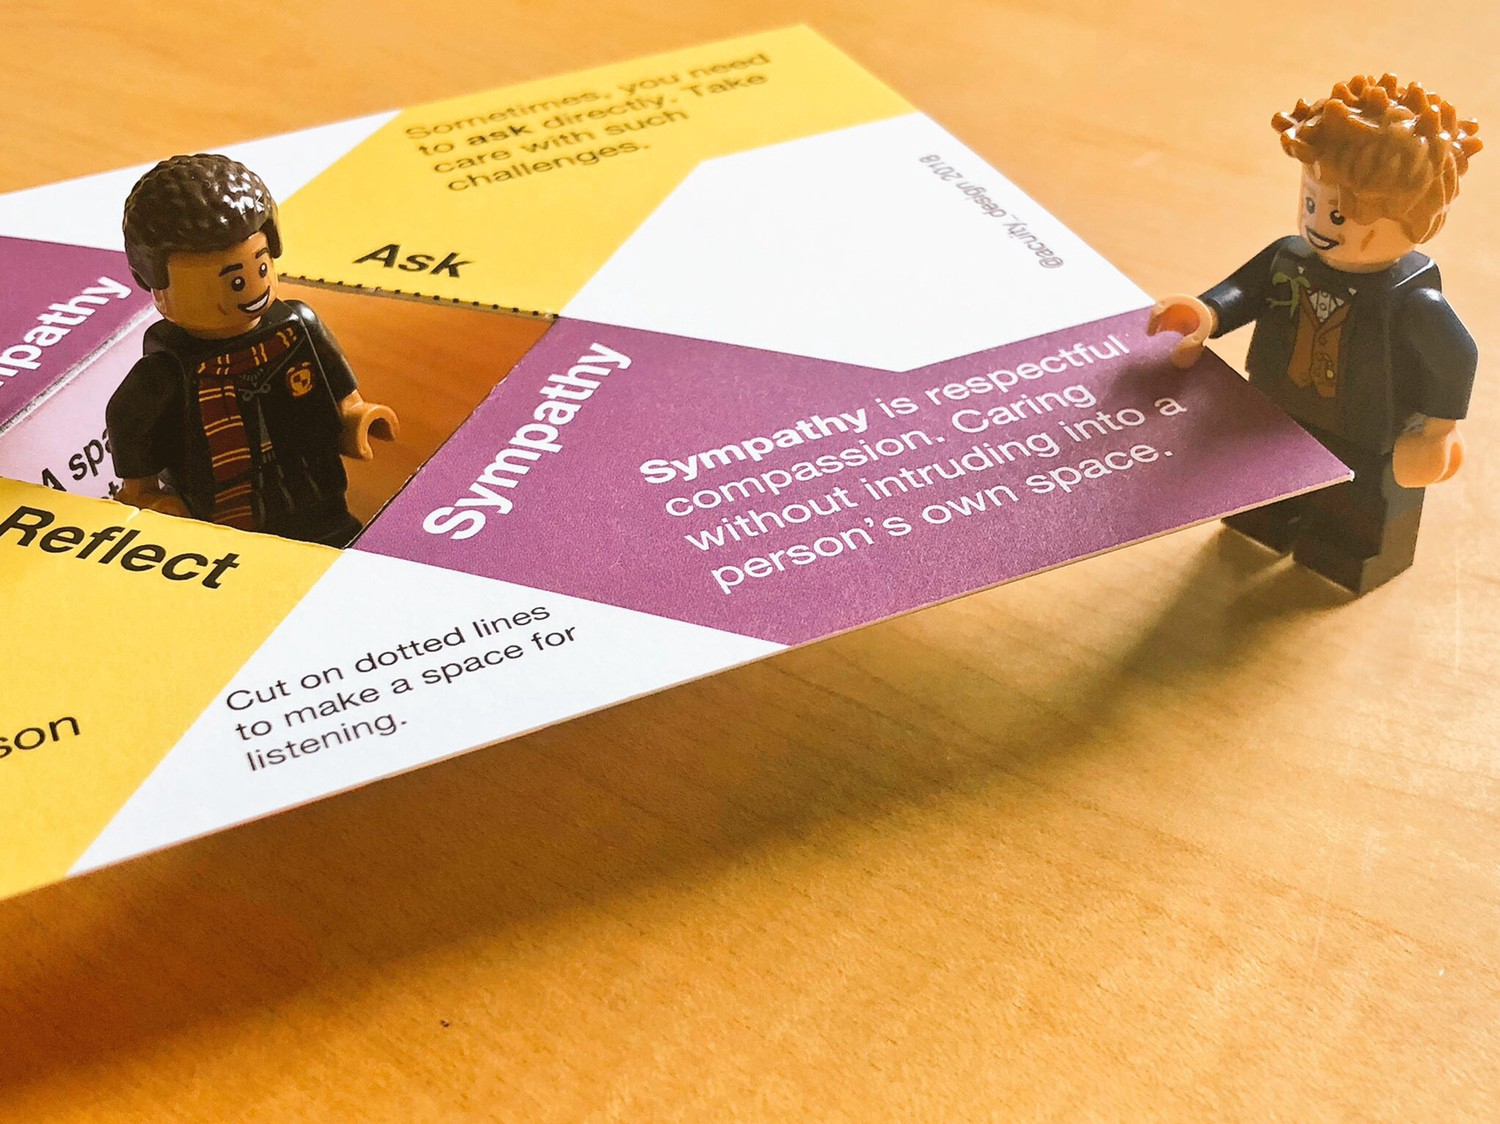 Minifig points at words on card about sympathy being respectful compassion